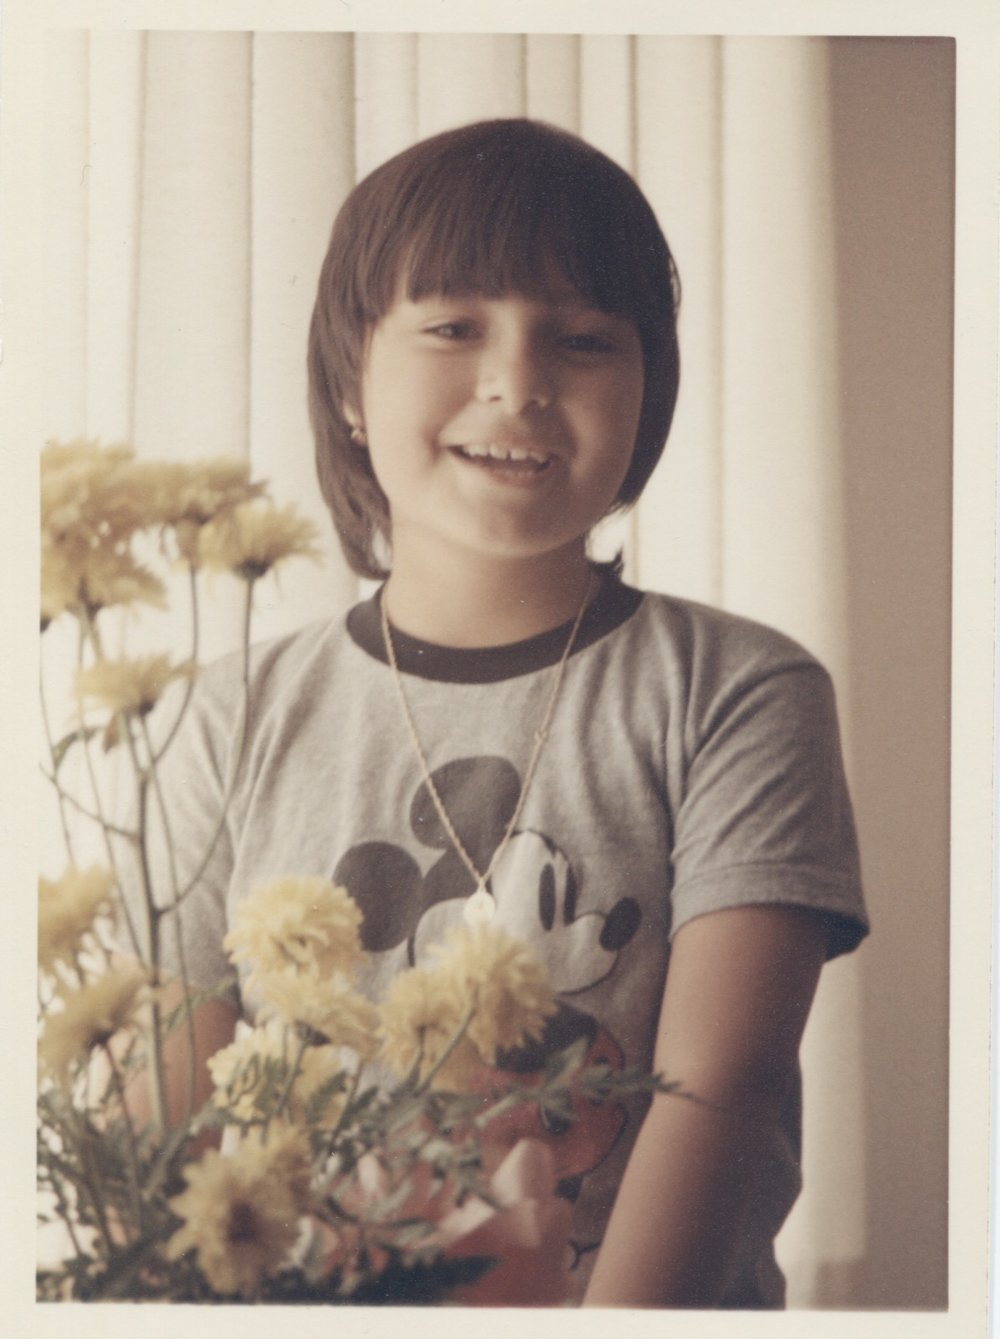 Me in 1971, sporting one of my earliest and most treasured souvenirs: my first Mickey Mouse t-shirt, direct from Disneyland. PHOTO: George Sanso